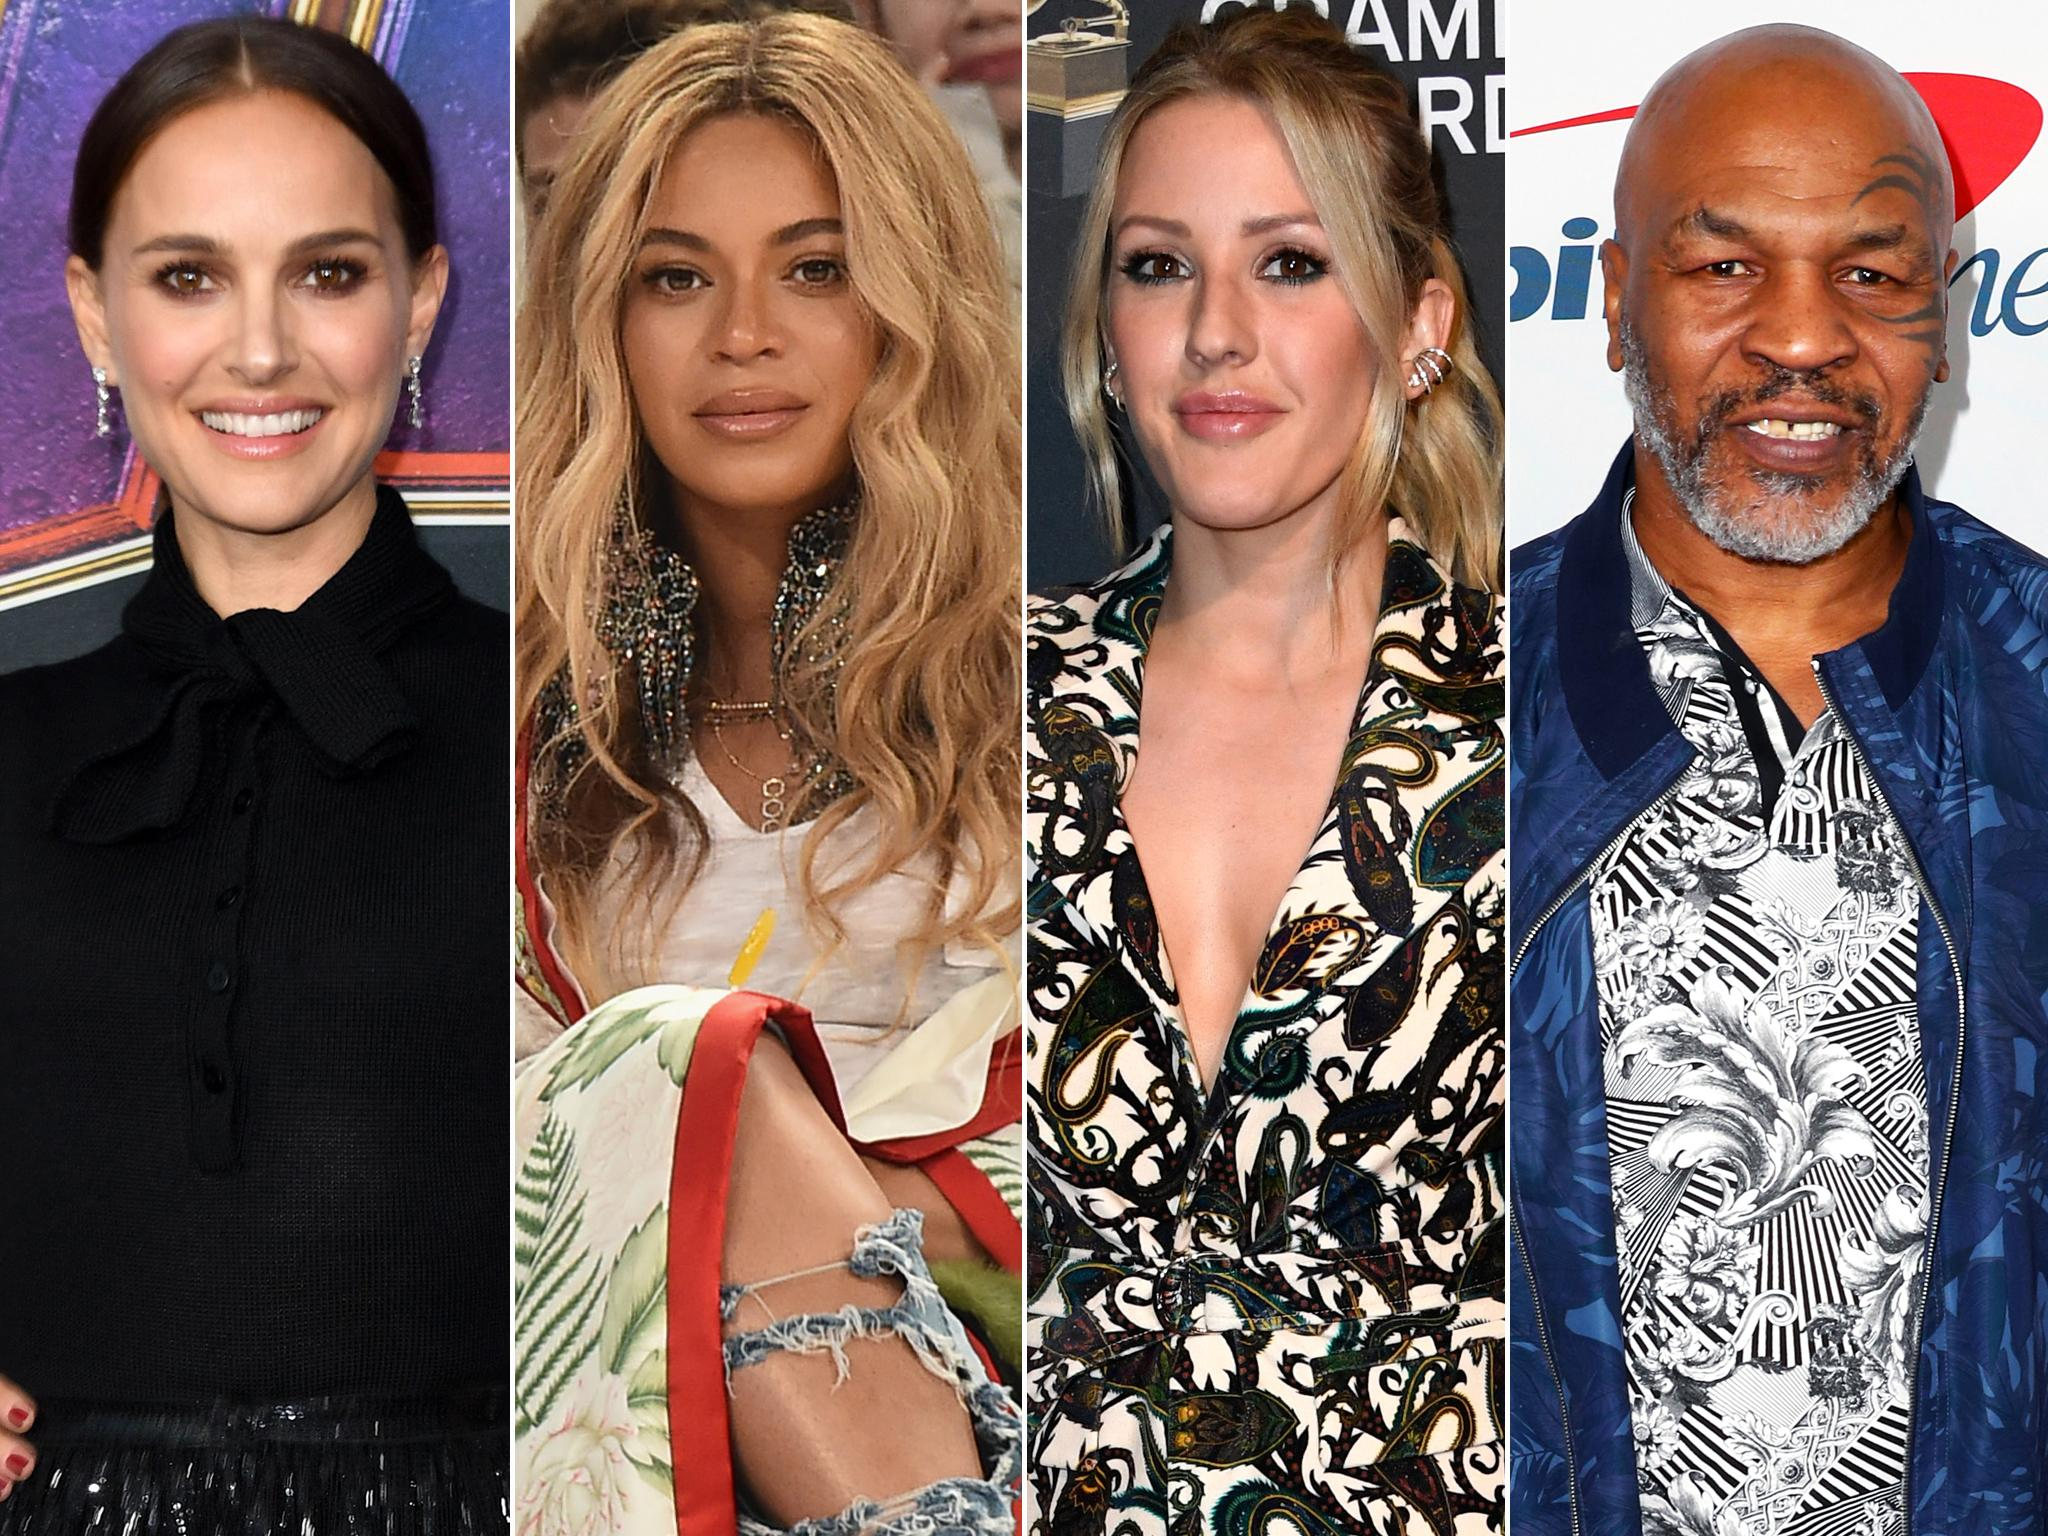 Celebrity vegans: Beyoncé and Natalie Portman among famous faces following plant-based diet 1